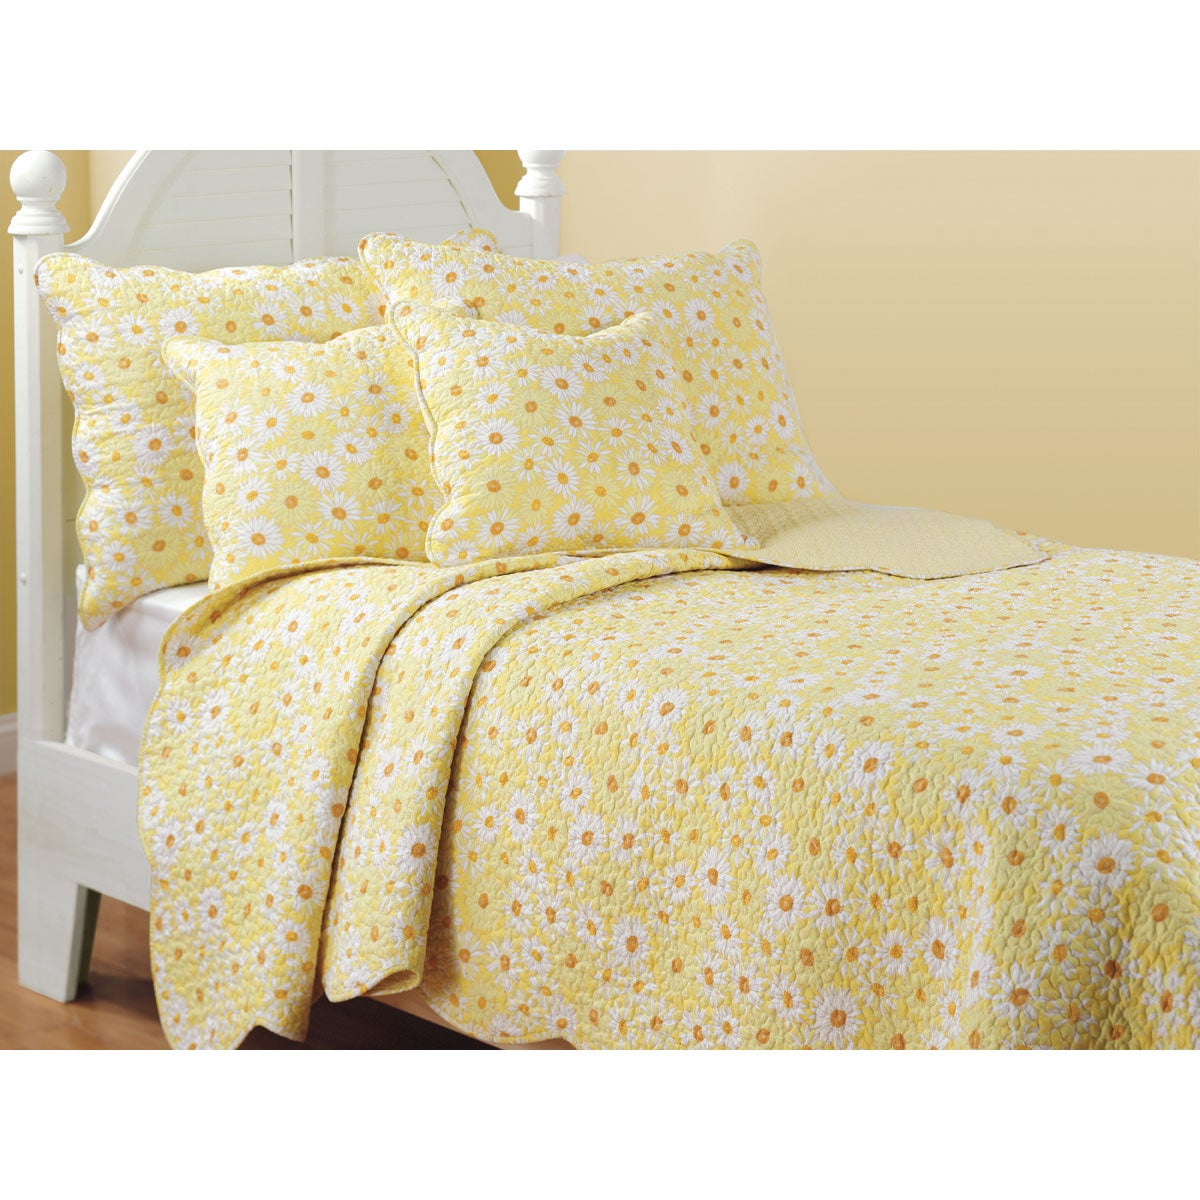 Image Result For Bed And Bath Bedding Sets